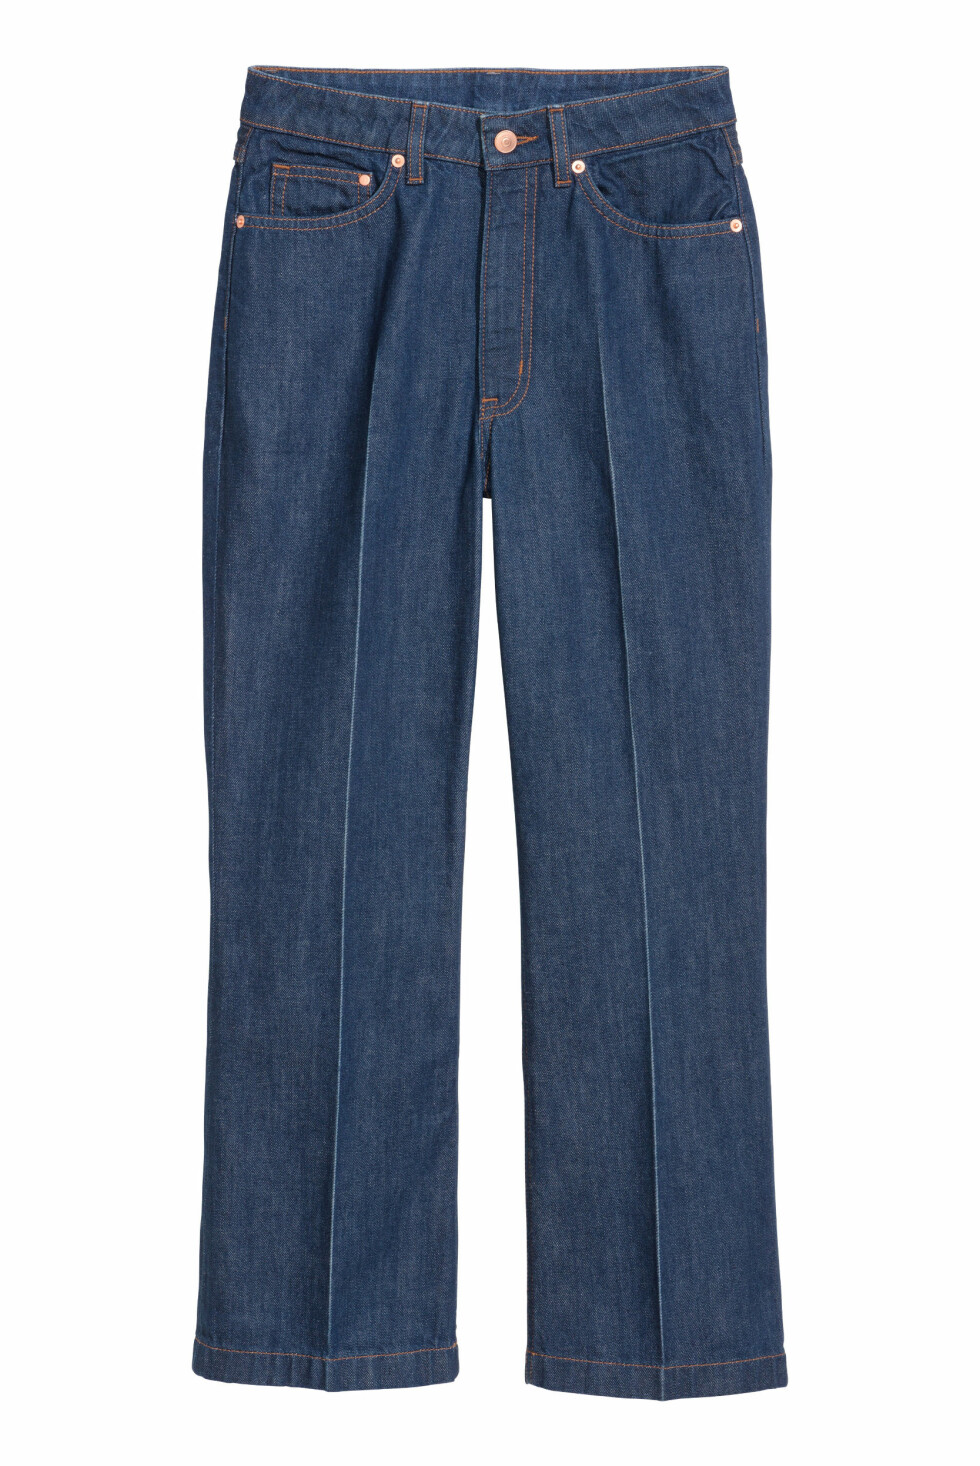 Jeans fra H&M |500,-| http://www2.hm.com/no_no/productpage.0569041002.html